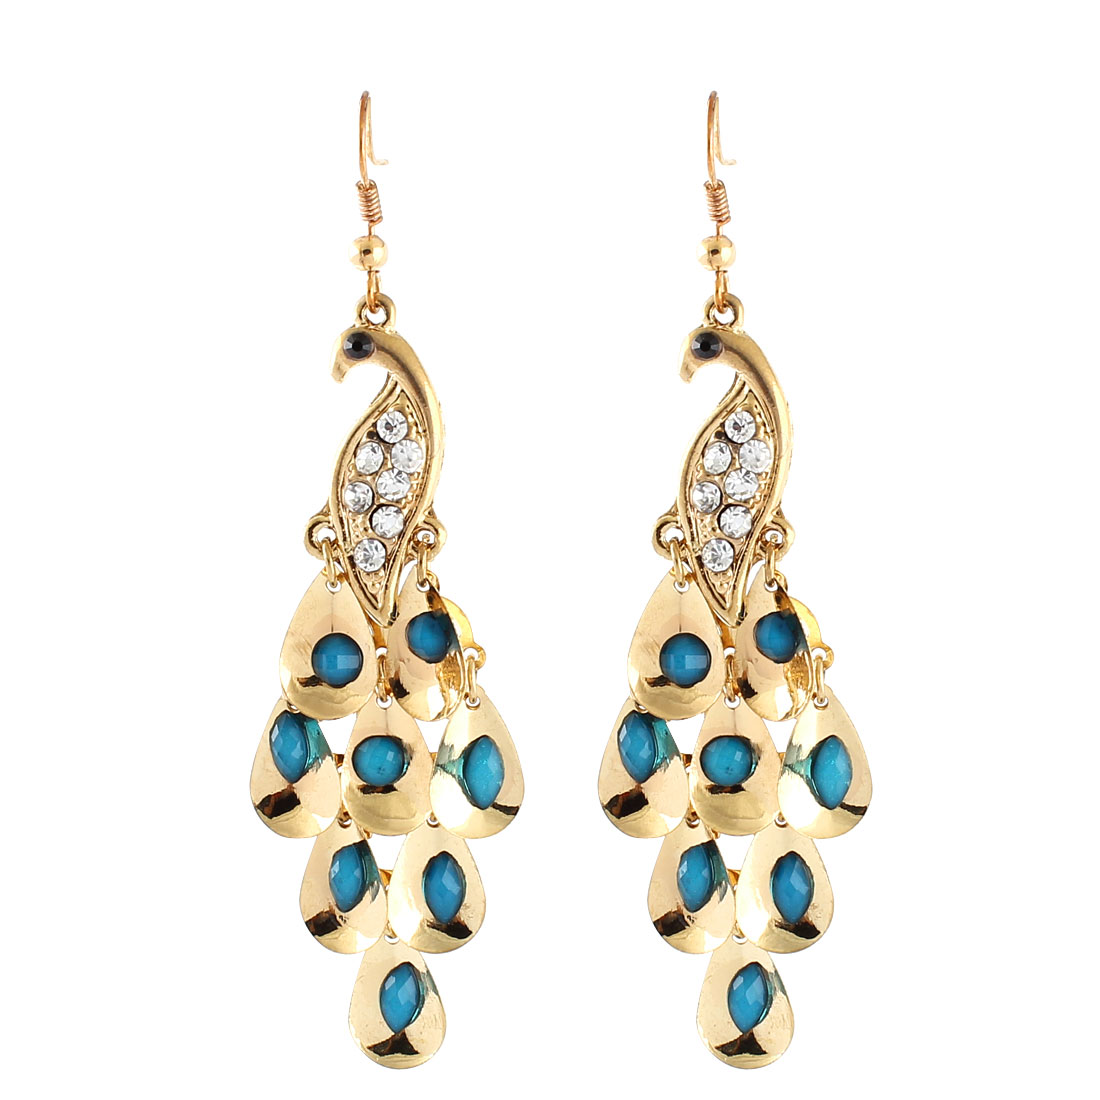 Women Metal Dangling Peafowl Style Pendant Rhinestone Inlaid Hook Earrings Teal Blue Pair